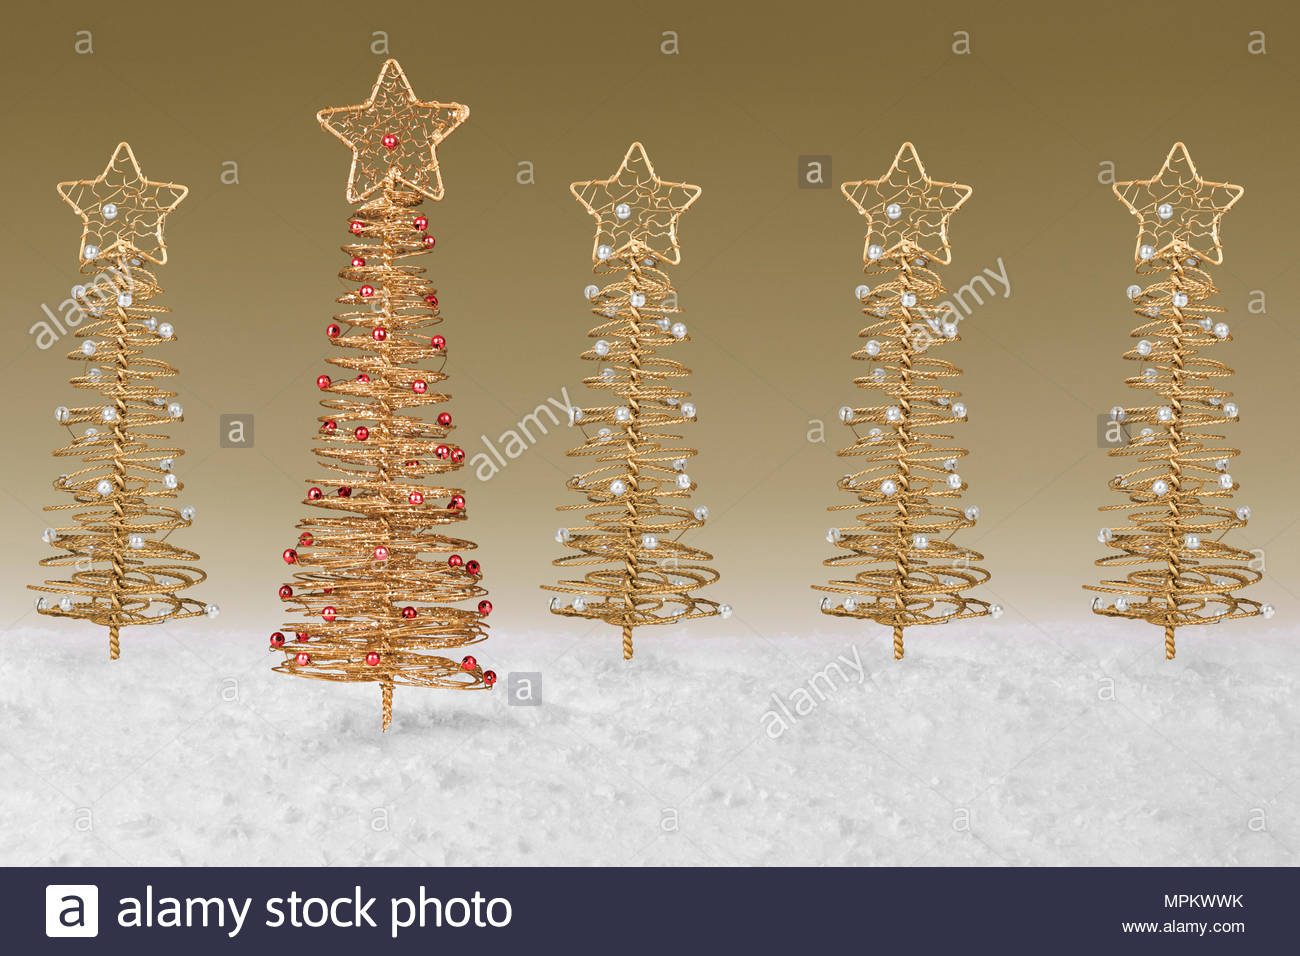 gold wire tree christmas decoration on a fake snow background